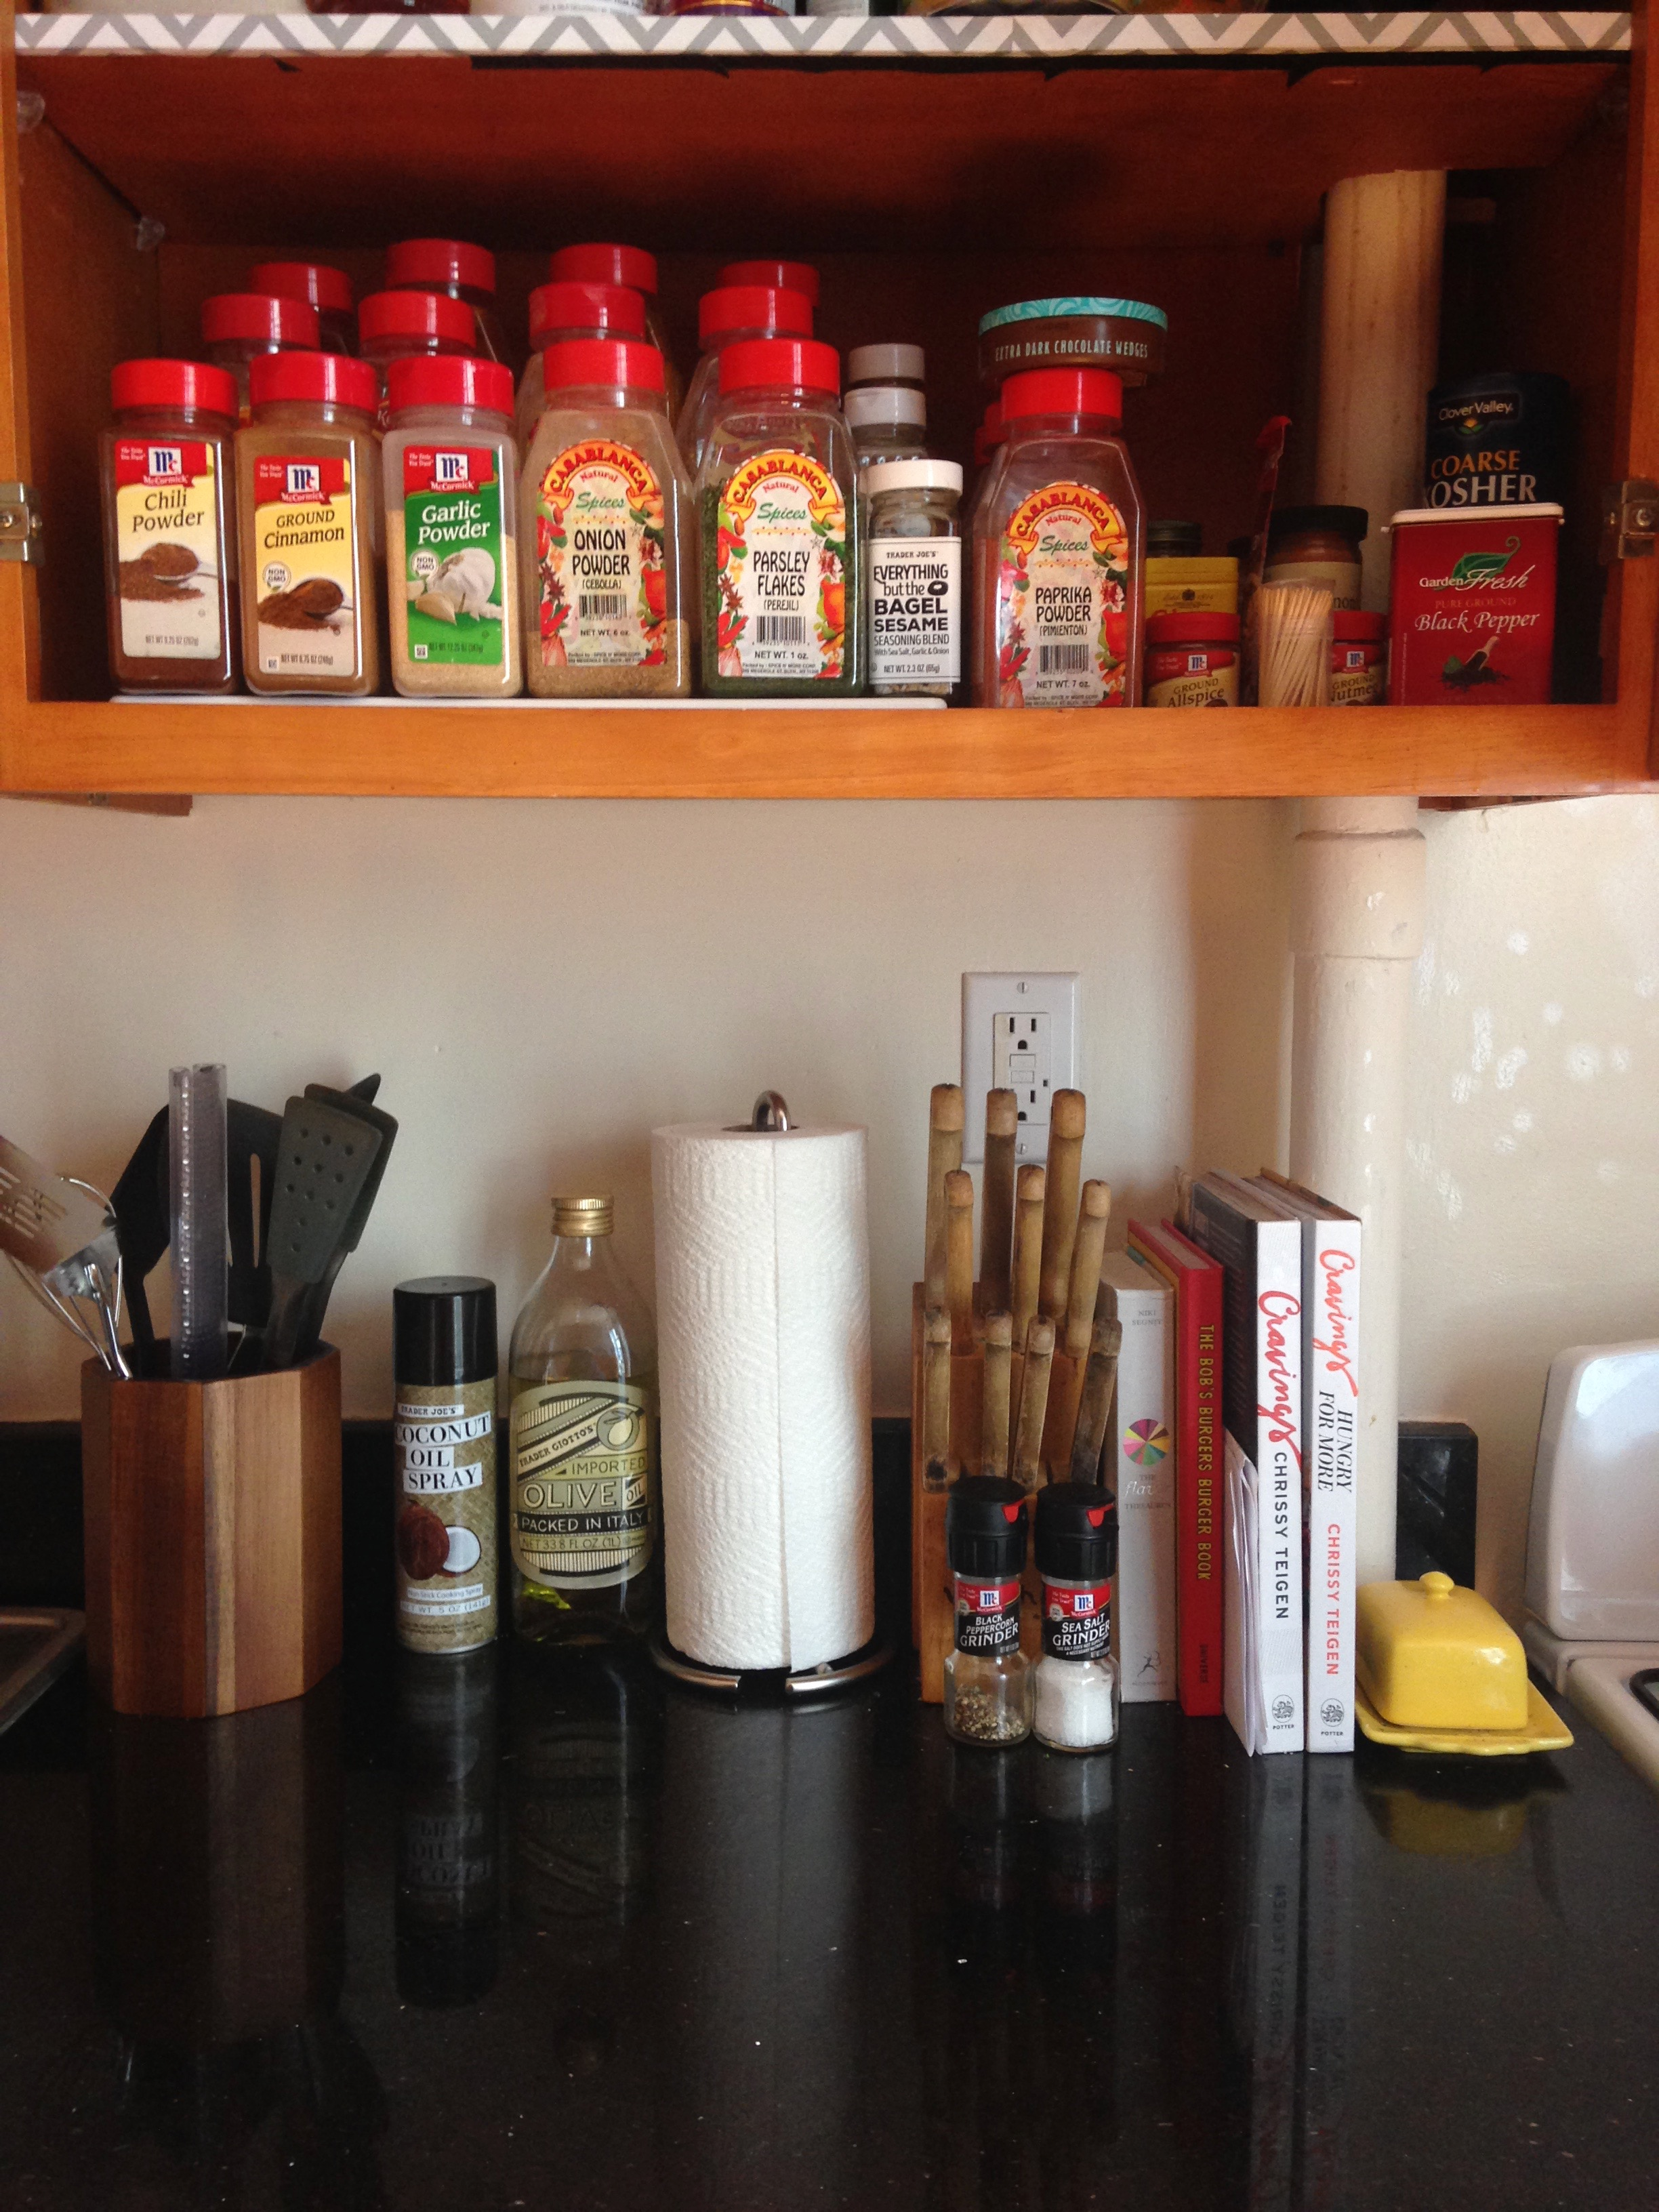 5. Spices & countertop